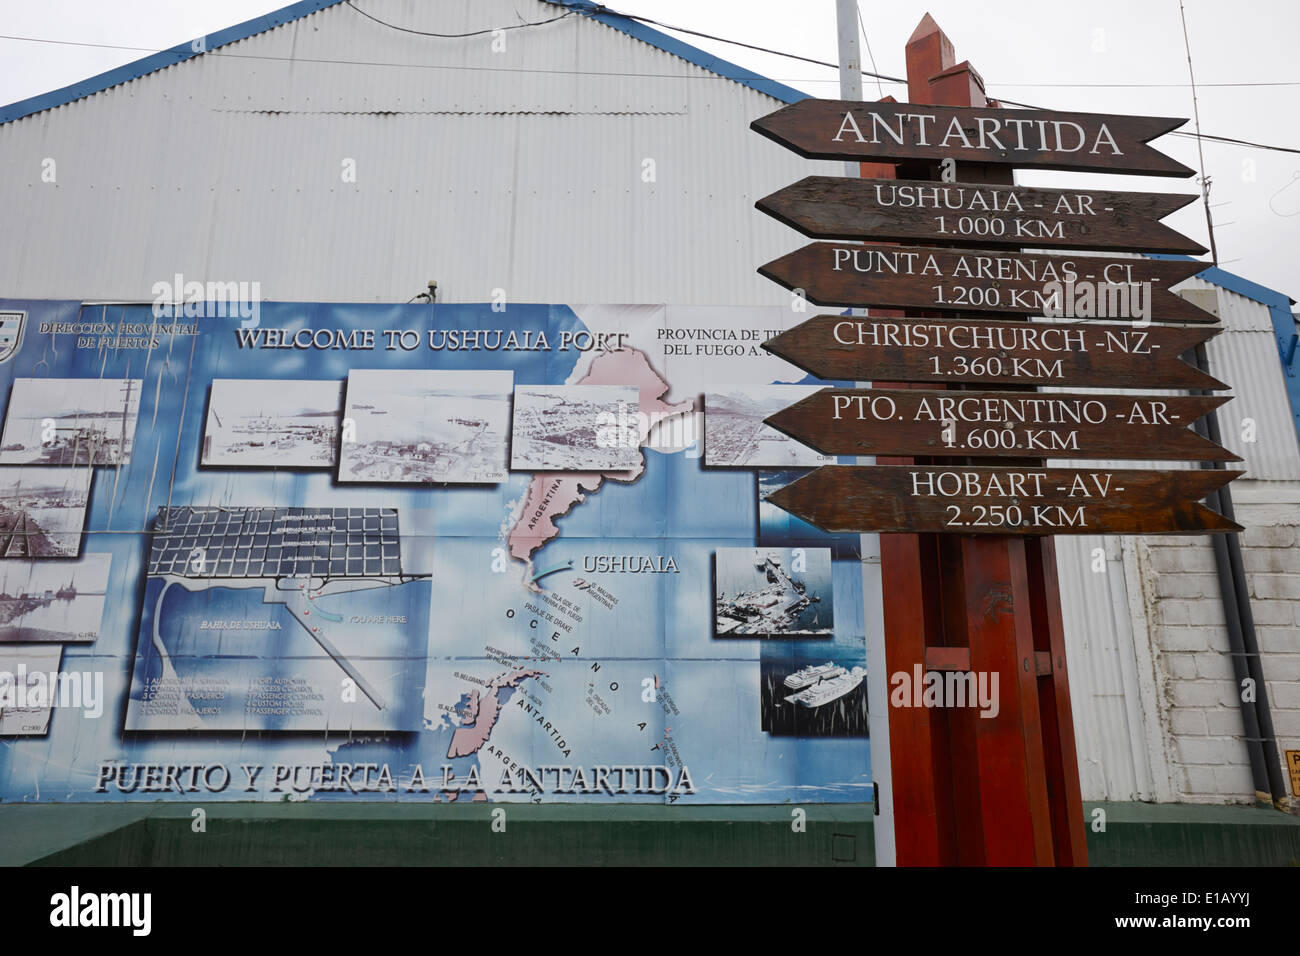 distance markers for various points from antarctica Ushuaia Argentina - Stock Image